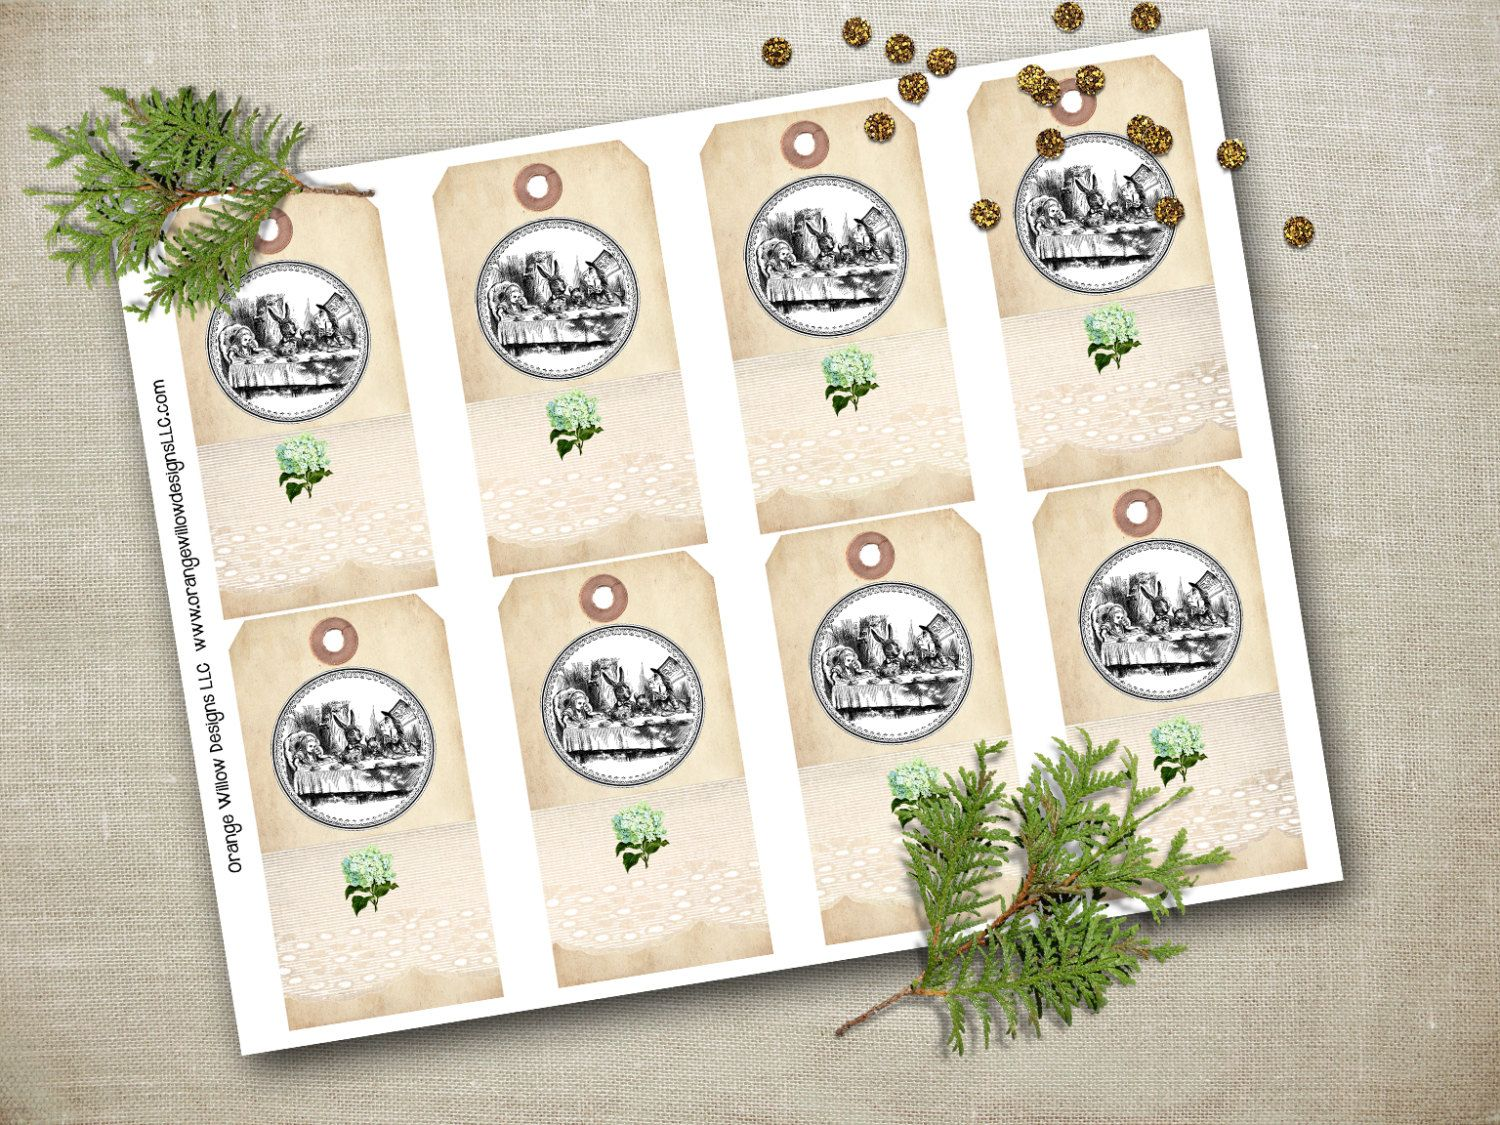 Alice in Wonderland Gift Tags Ornament Hang Tags, Natural Christmas Country Chic…